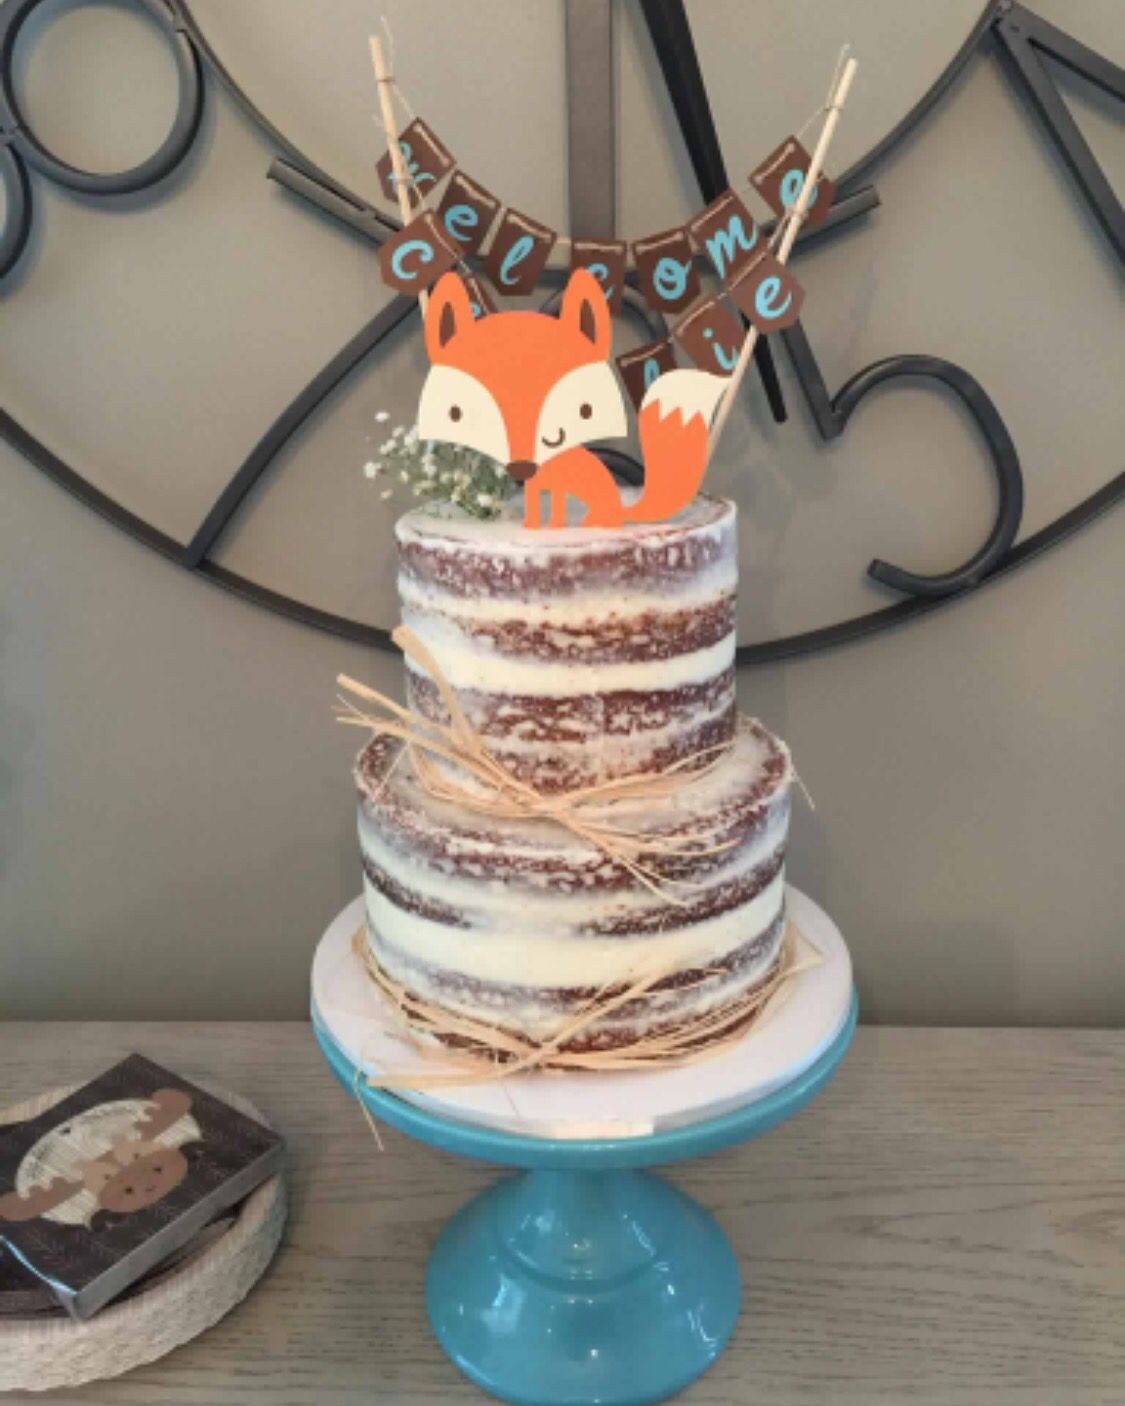 Rustic Baby Shower Cakes : rustic, shower, cakes, Screenshots